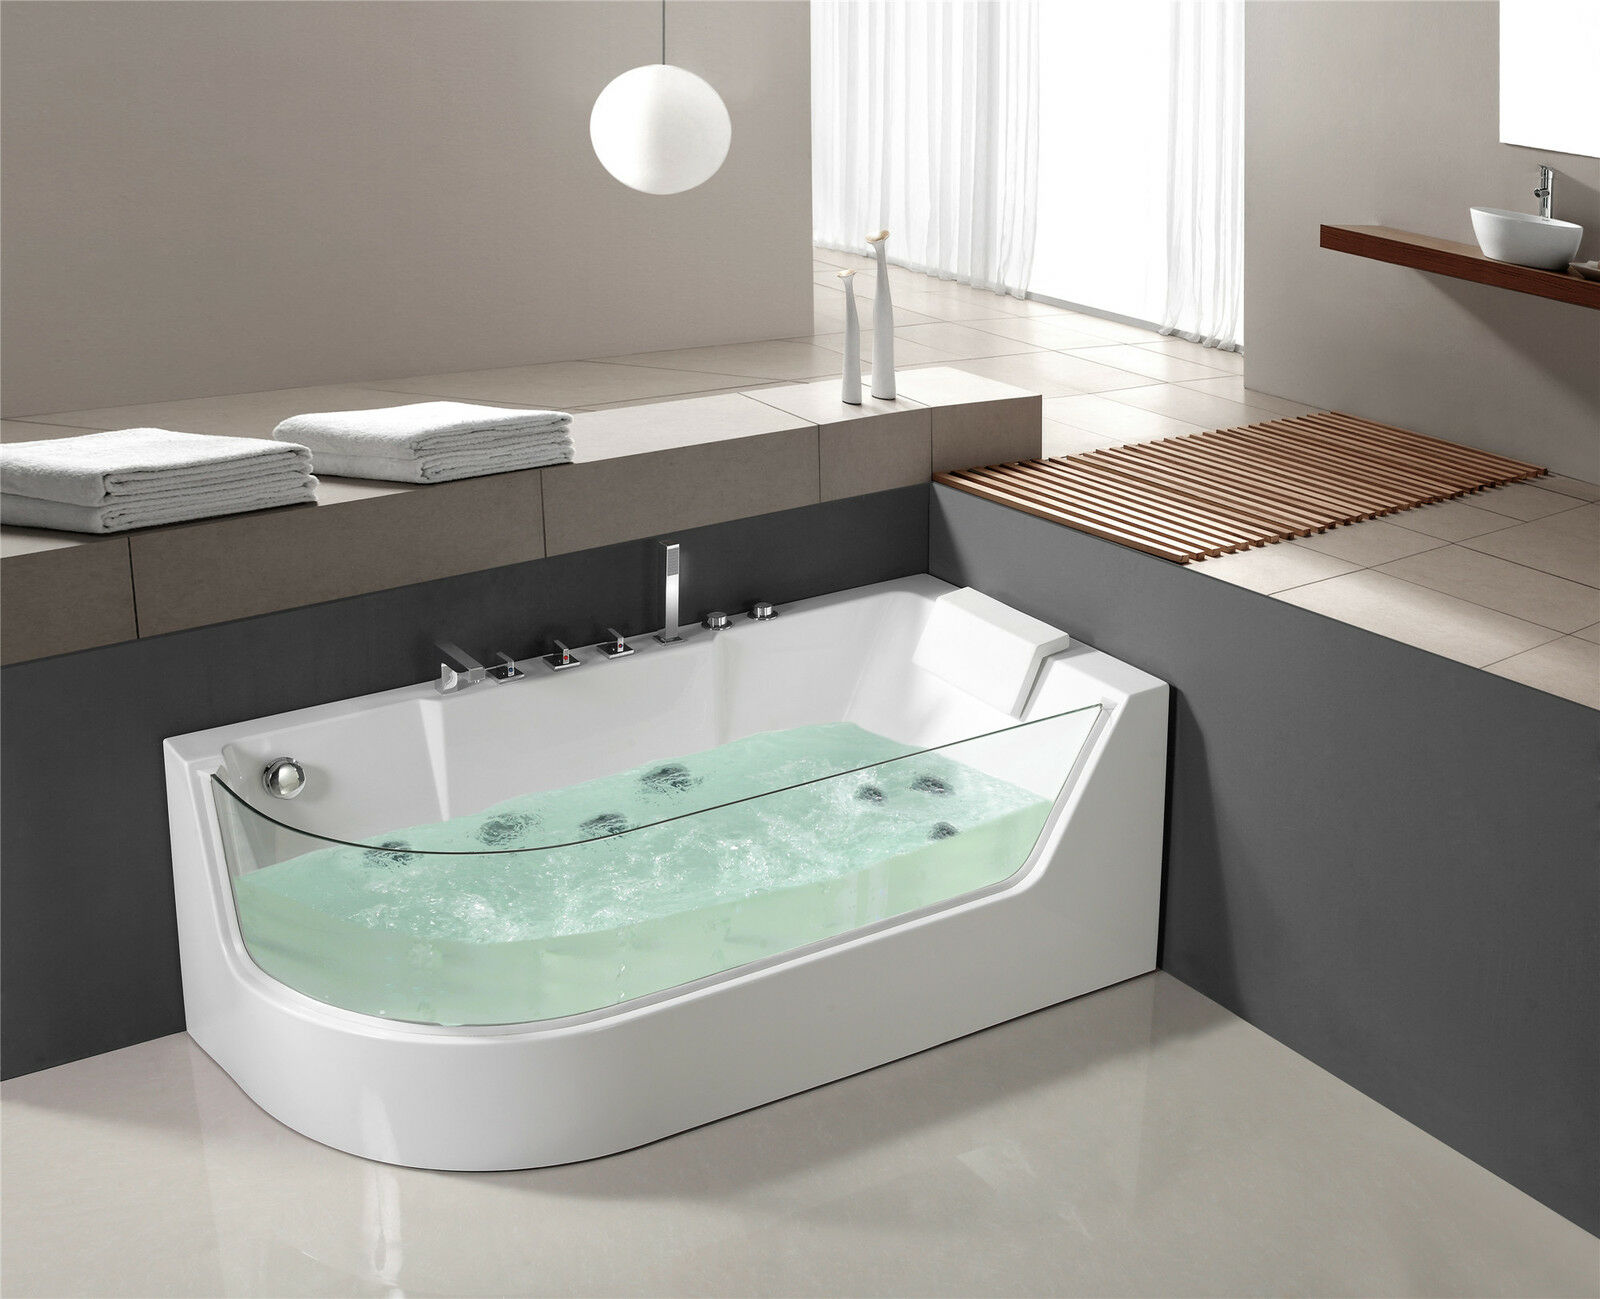 whirlpool eckwhirlpool badewanne jacuzzi whirlwanne pool. Black Bedroom Furniture Sets. Home Design Ideas